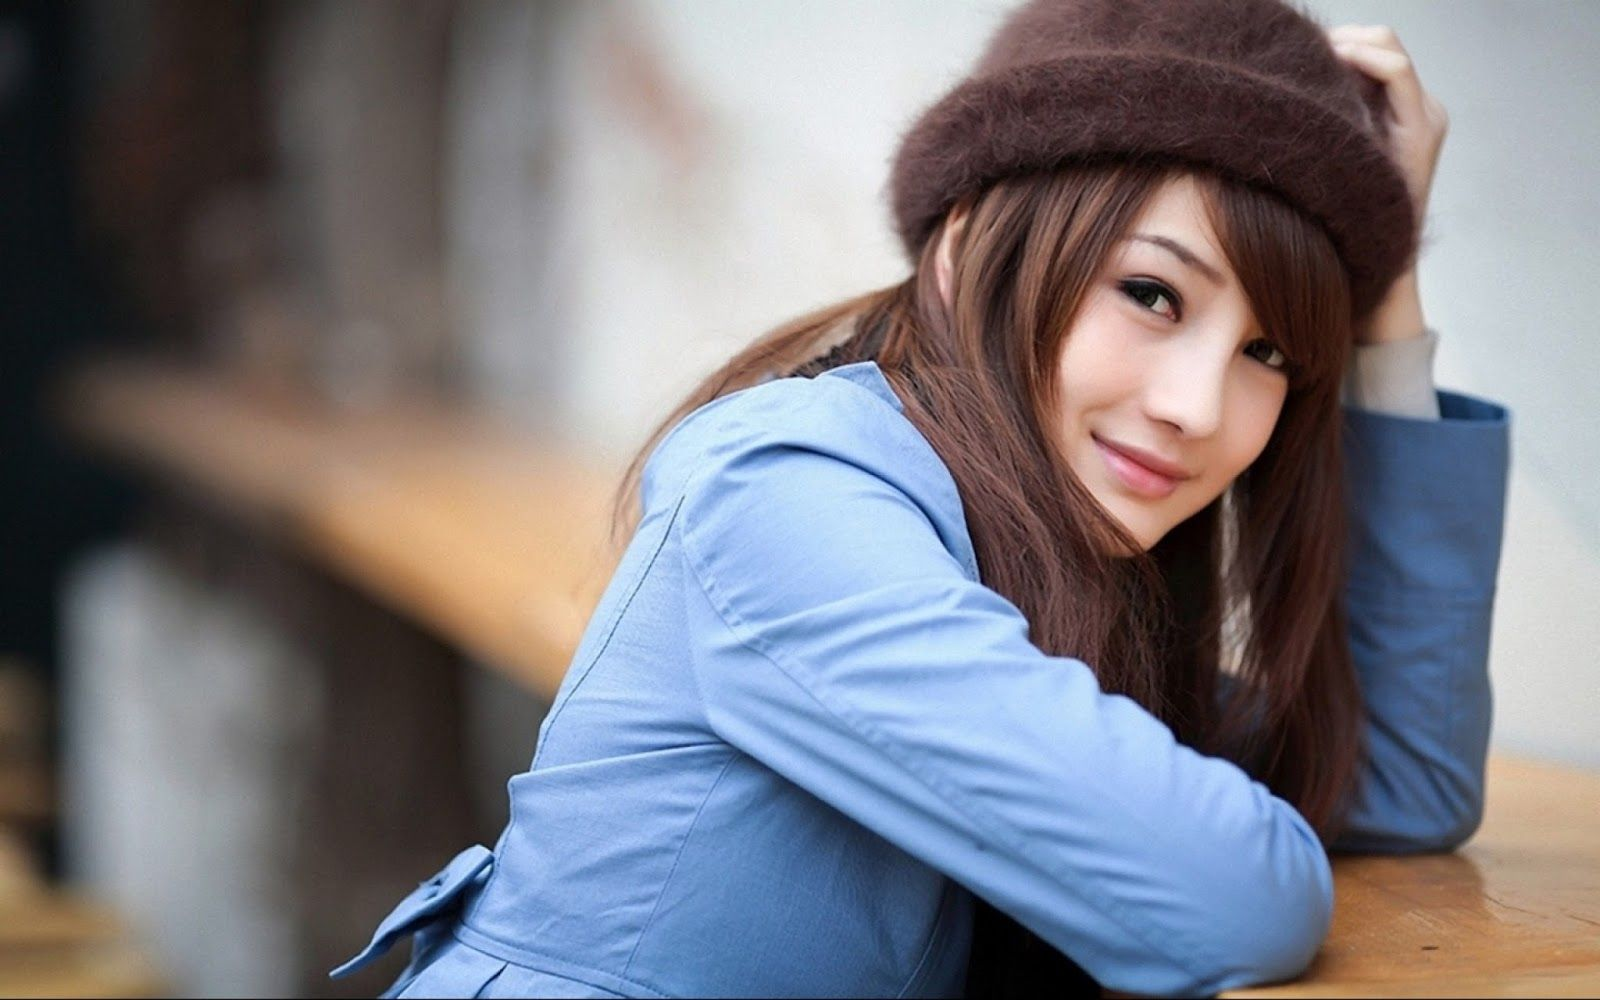 Cute Girl Backgrounds For Desktop HD Wallpapers Pop 19201200